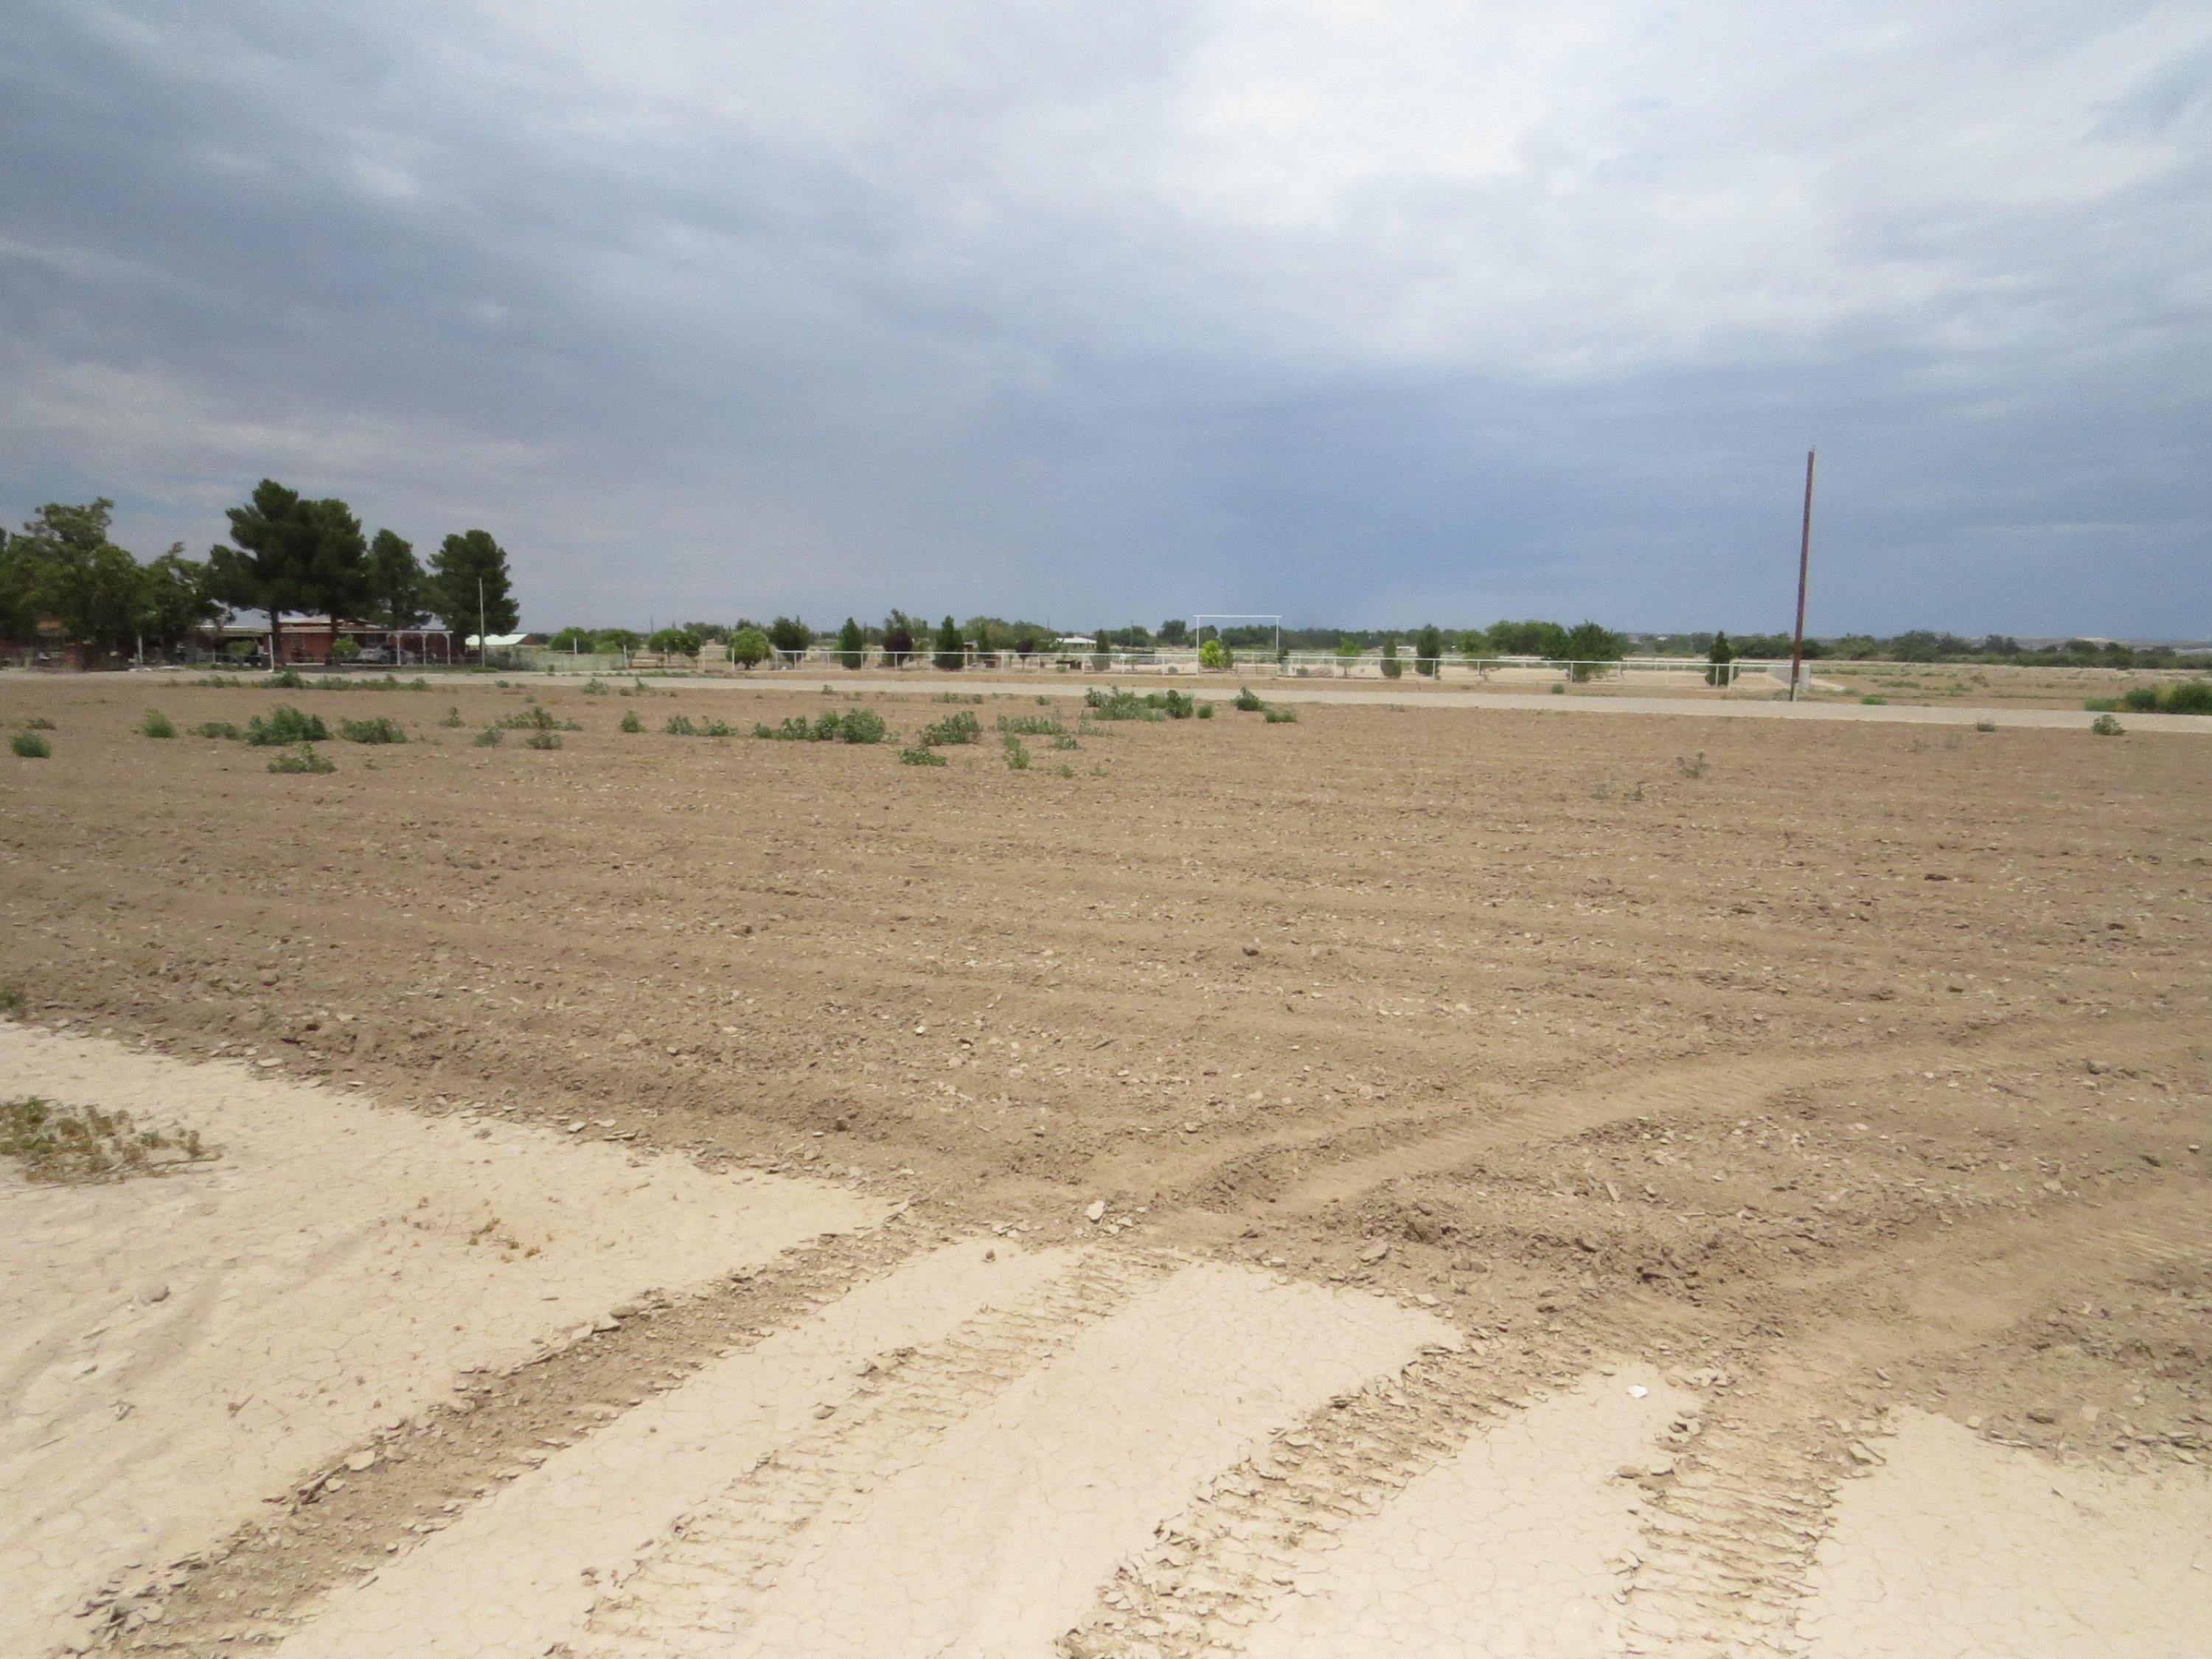 TBD TBD, San Elizario, Texas 79849, ,Land,For sale,TBD,813897